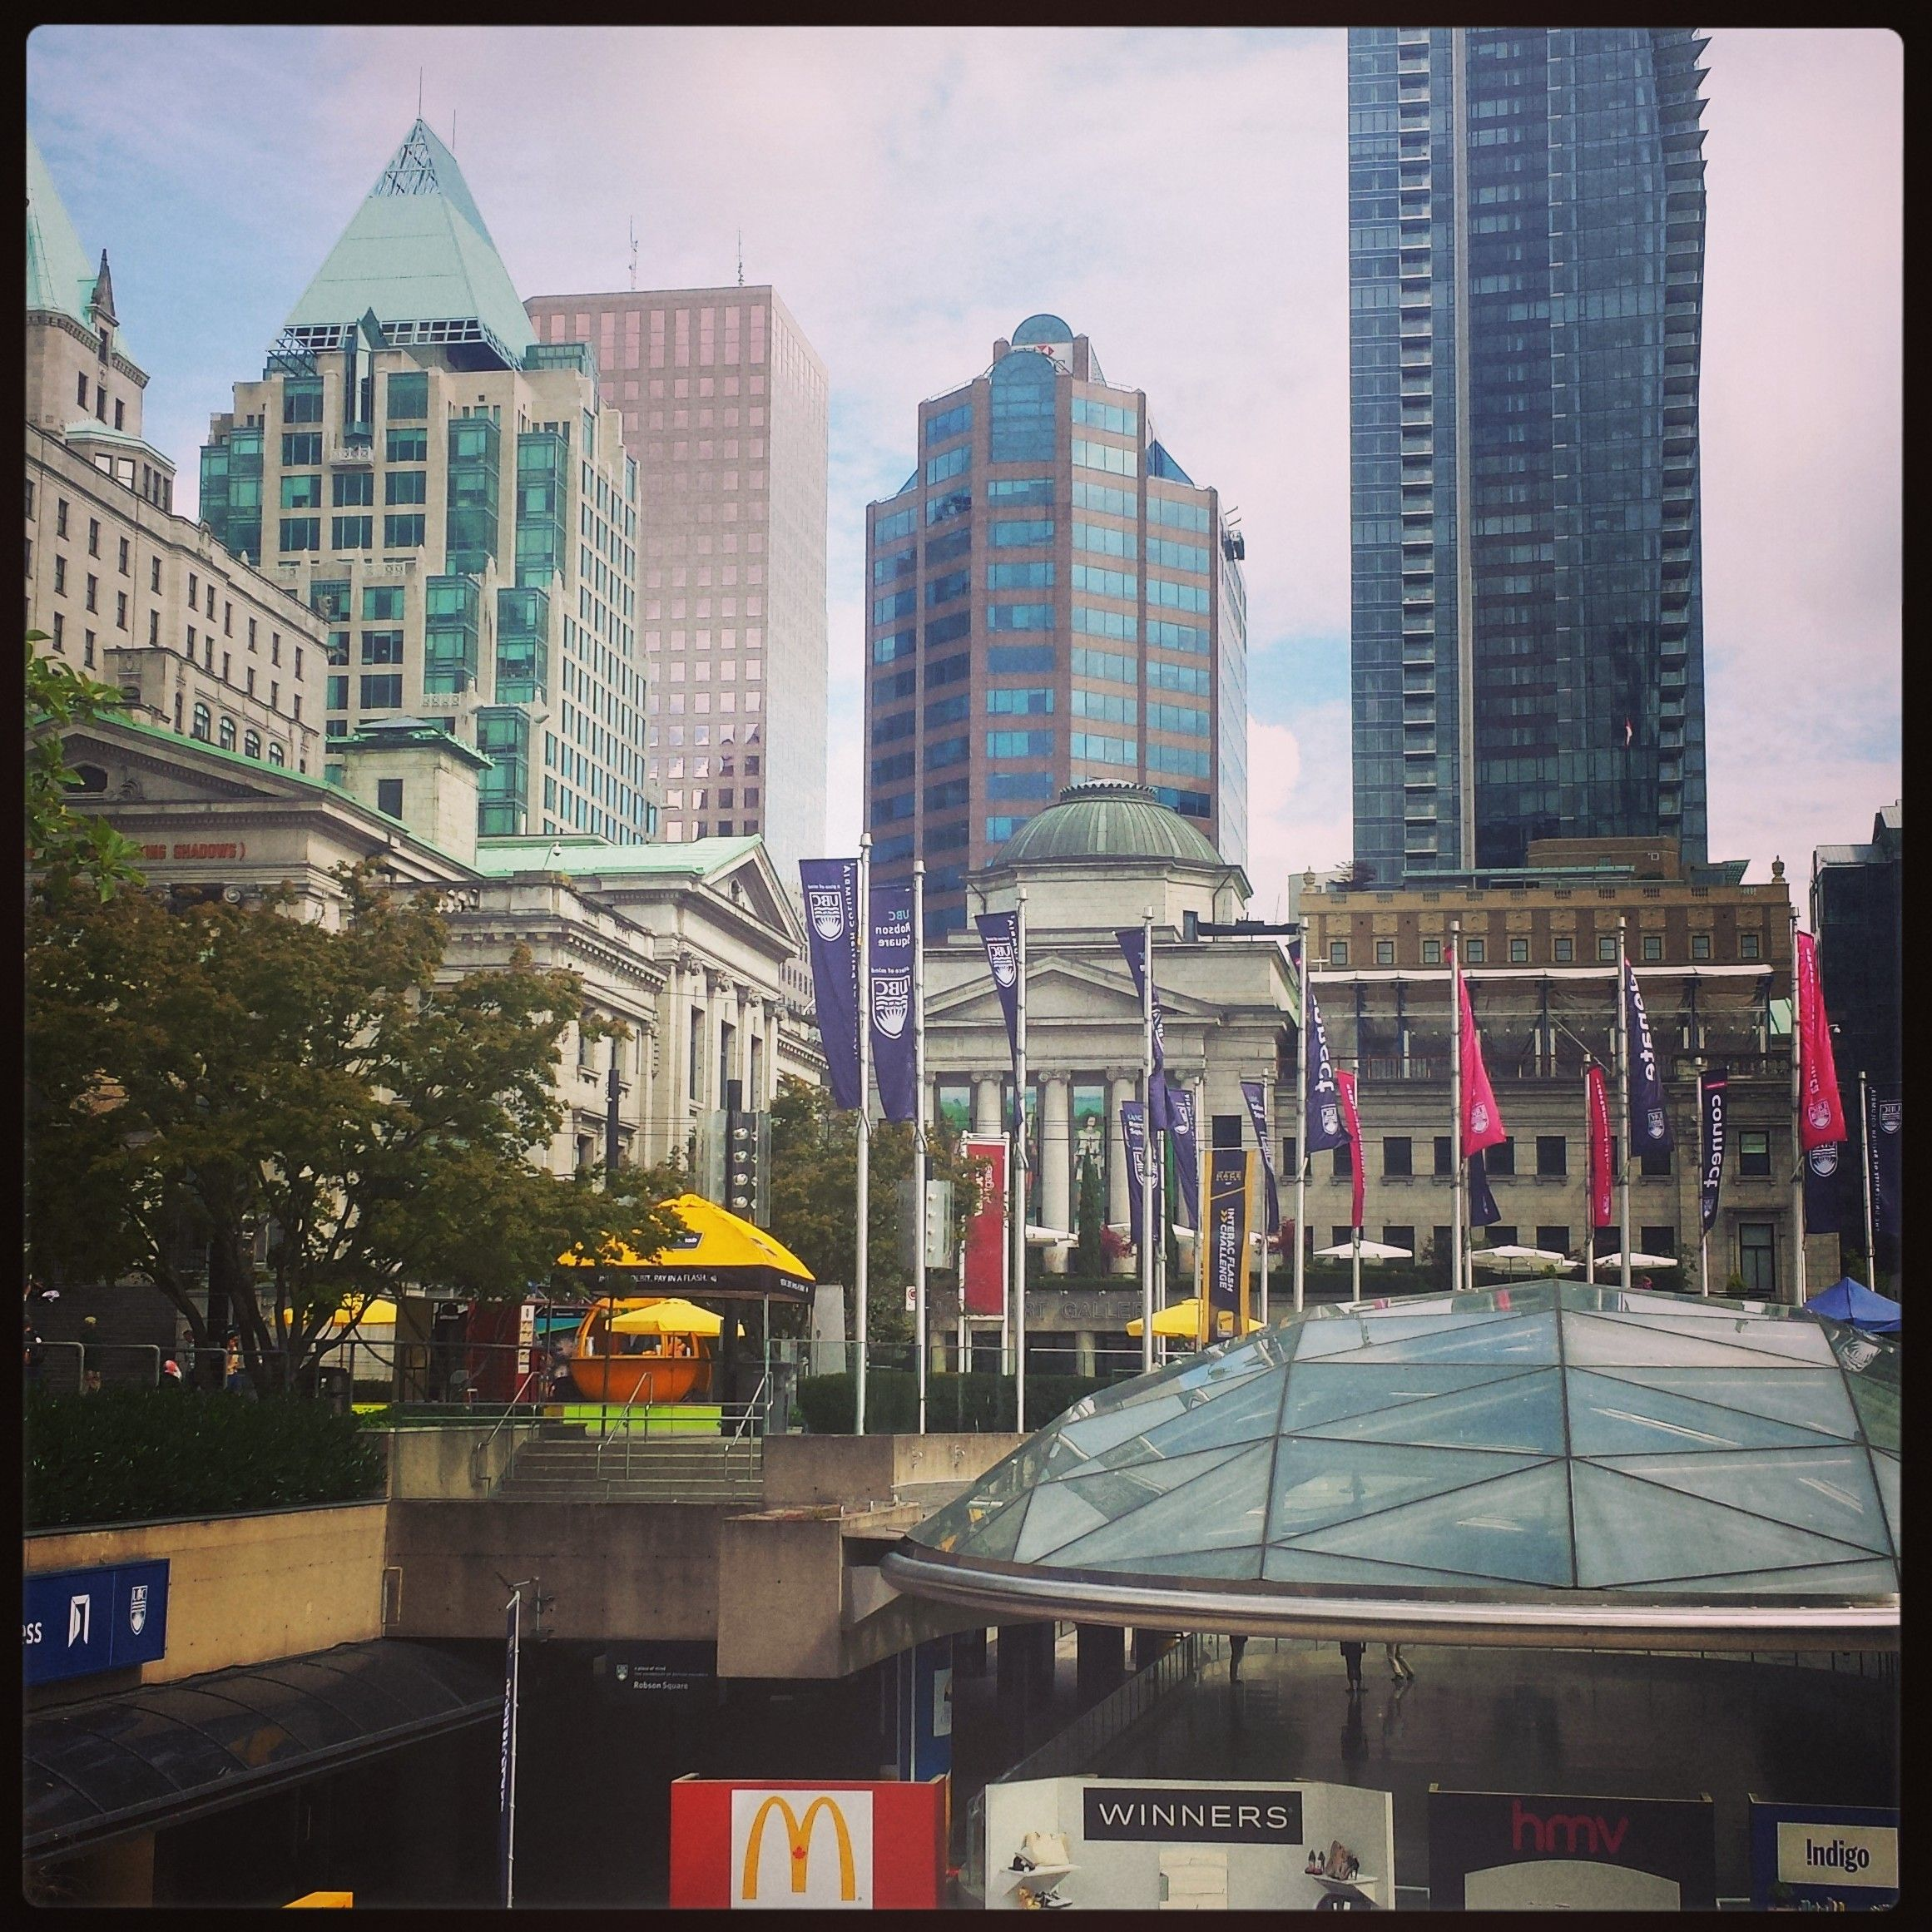 Yaletown Vancouver: Robson Square. #Vancouver #Yaletown